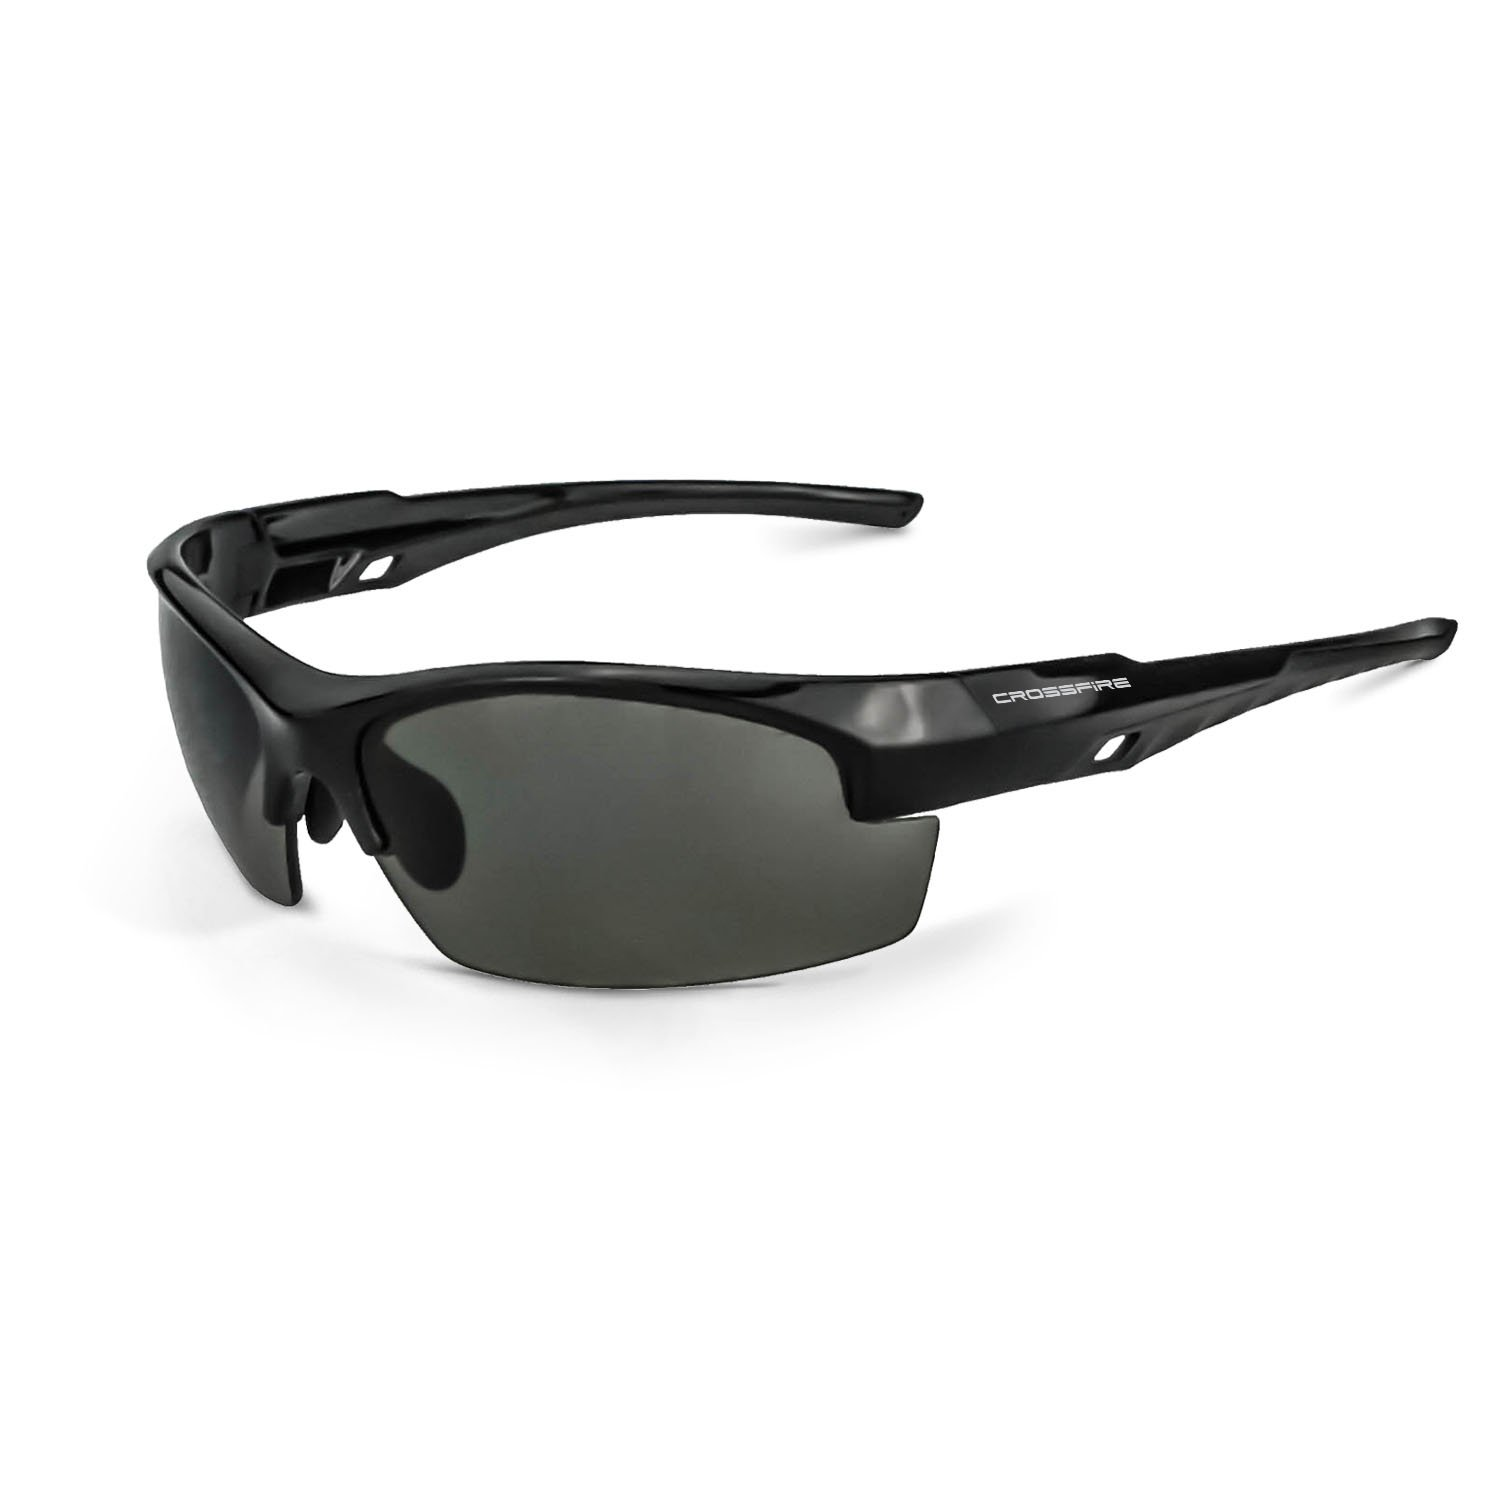 Crossfire Eyewear 4061 Crucible Smoke LENS /& Shiny Black Frame,